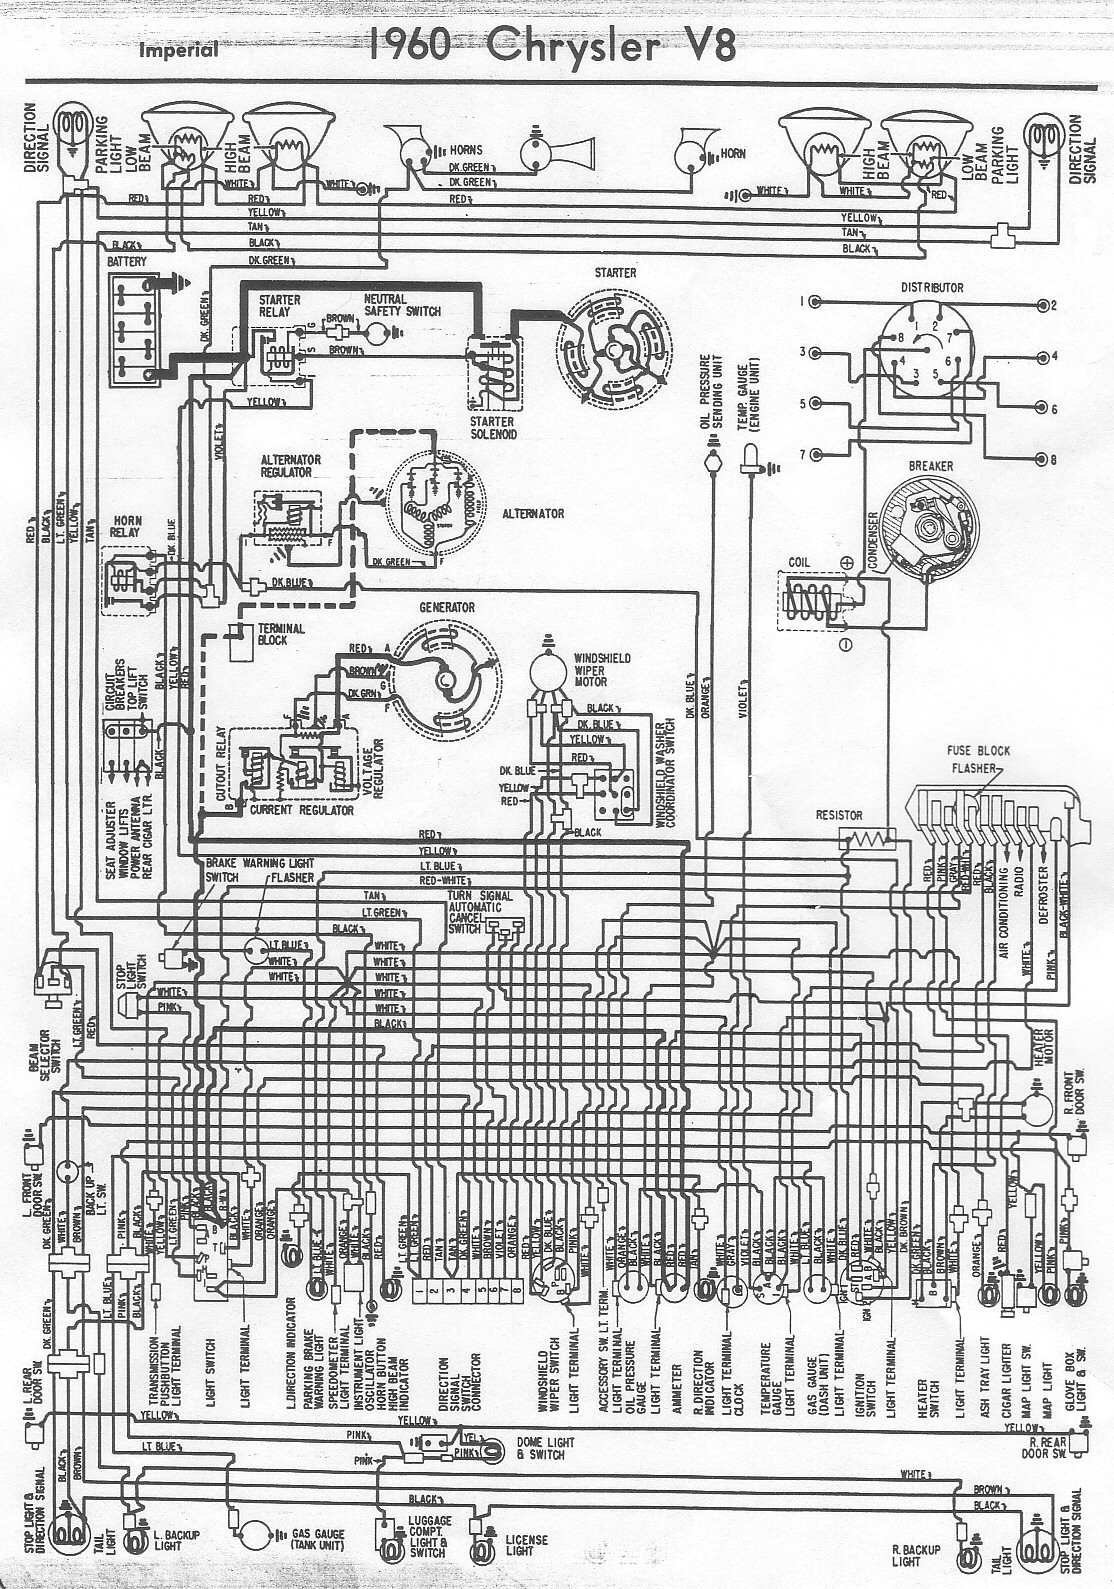 60ImperialV8 imperial wiring diagrams wiring schematics for cars \u2022 free wiring Wiring 5 Wire Door Lock at fashall.co